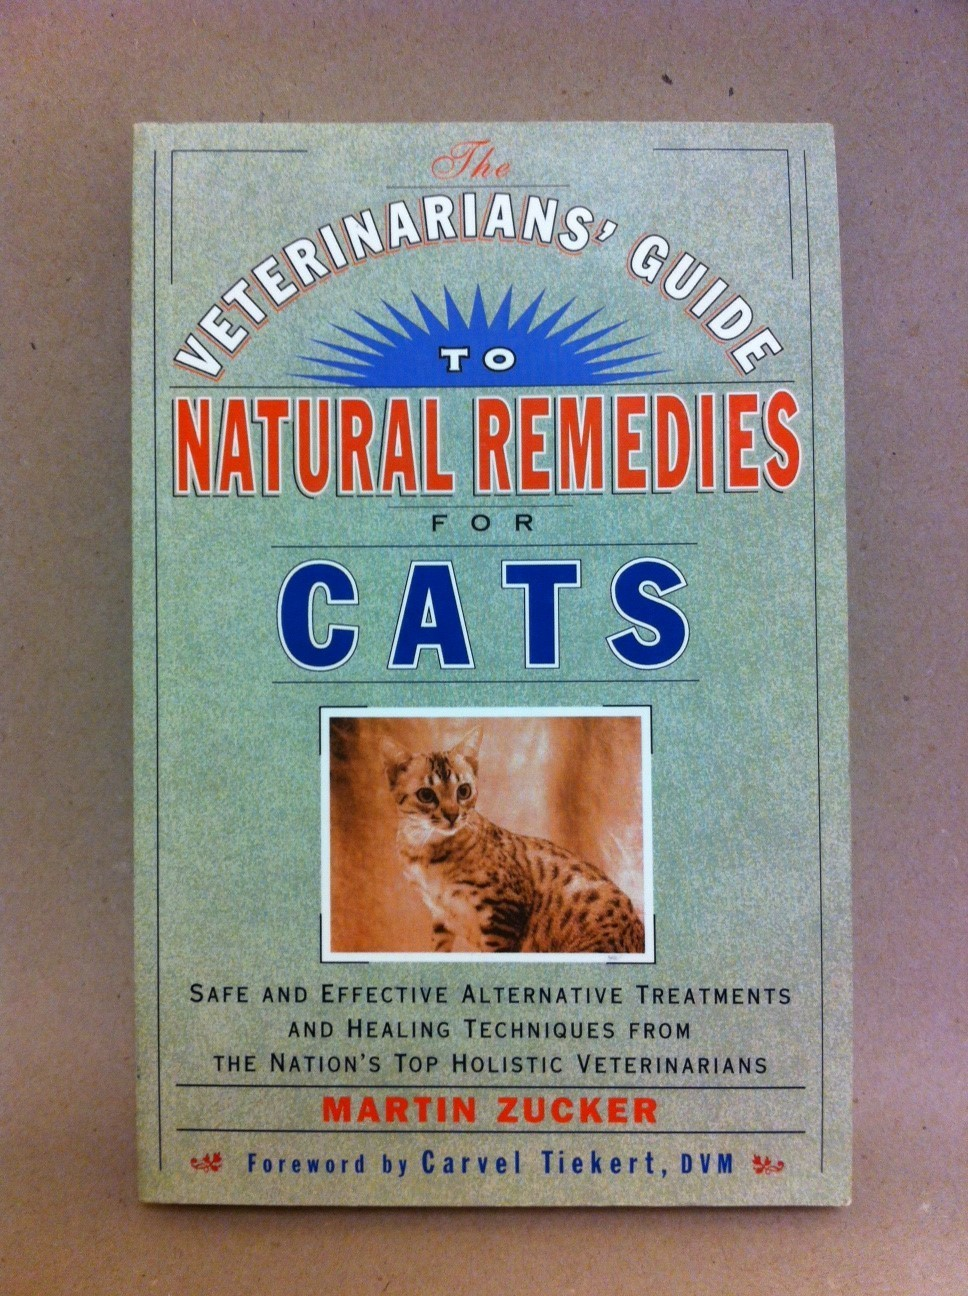 A Veterinarian's Guide to Natural Remedies for Cats